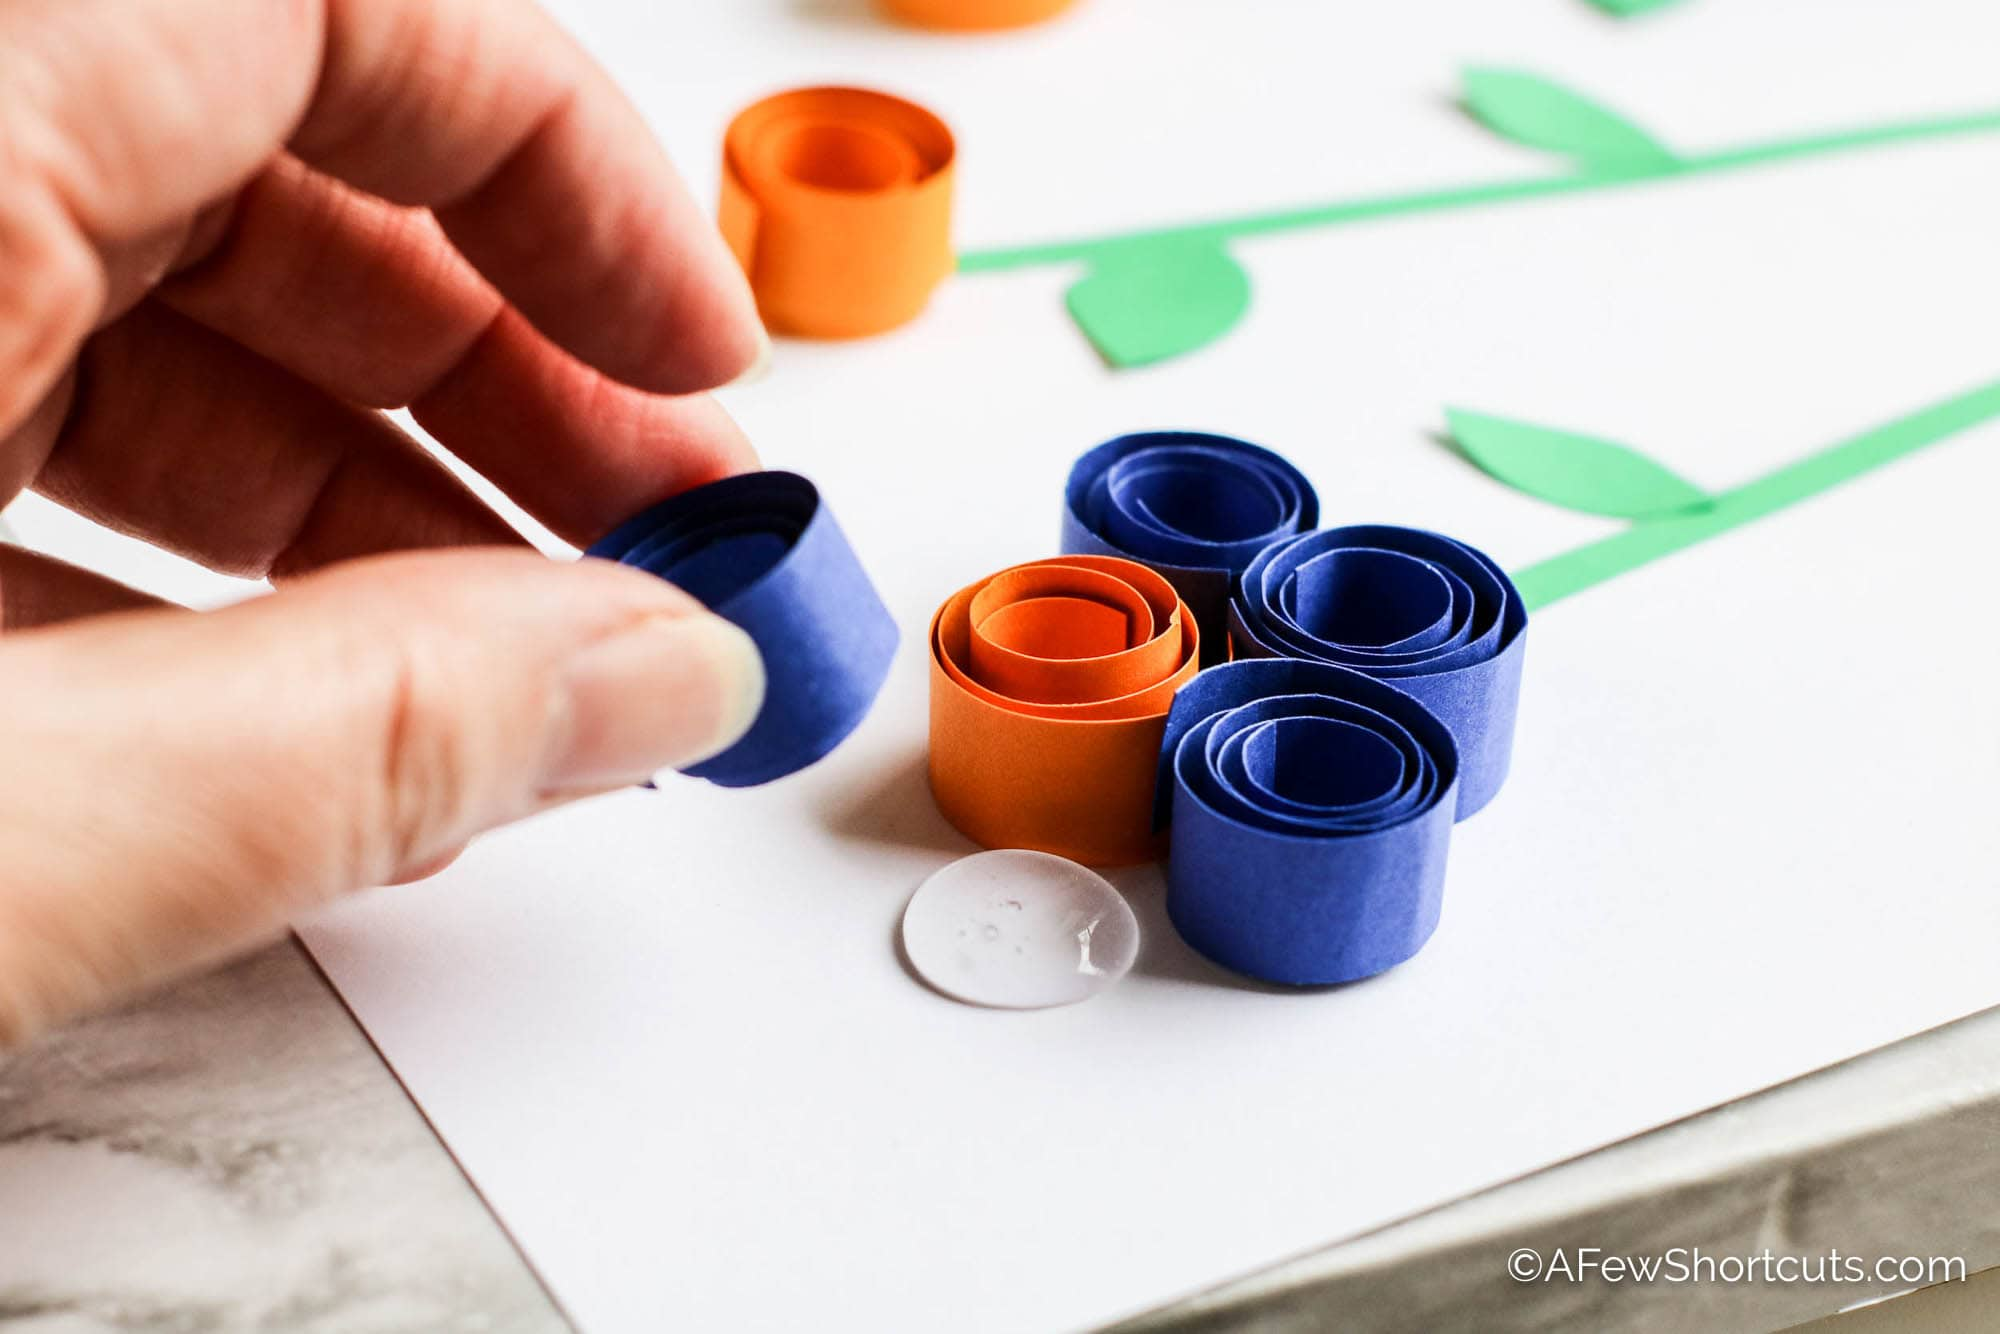 Curled Paper Flower assembly